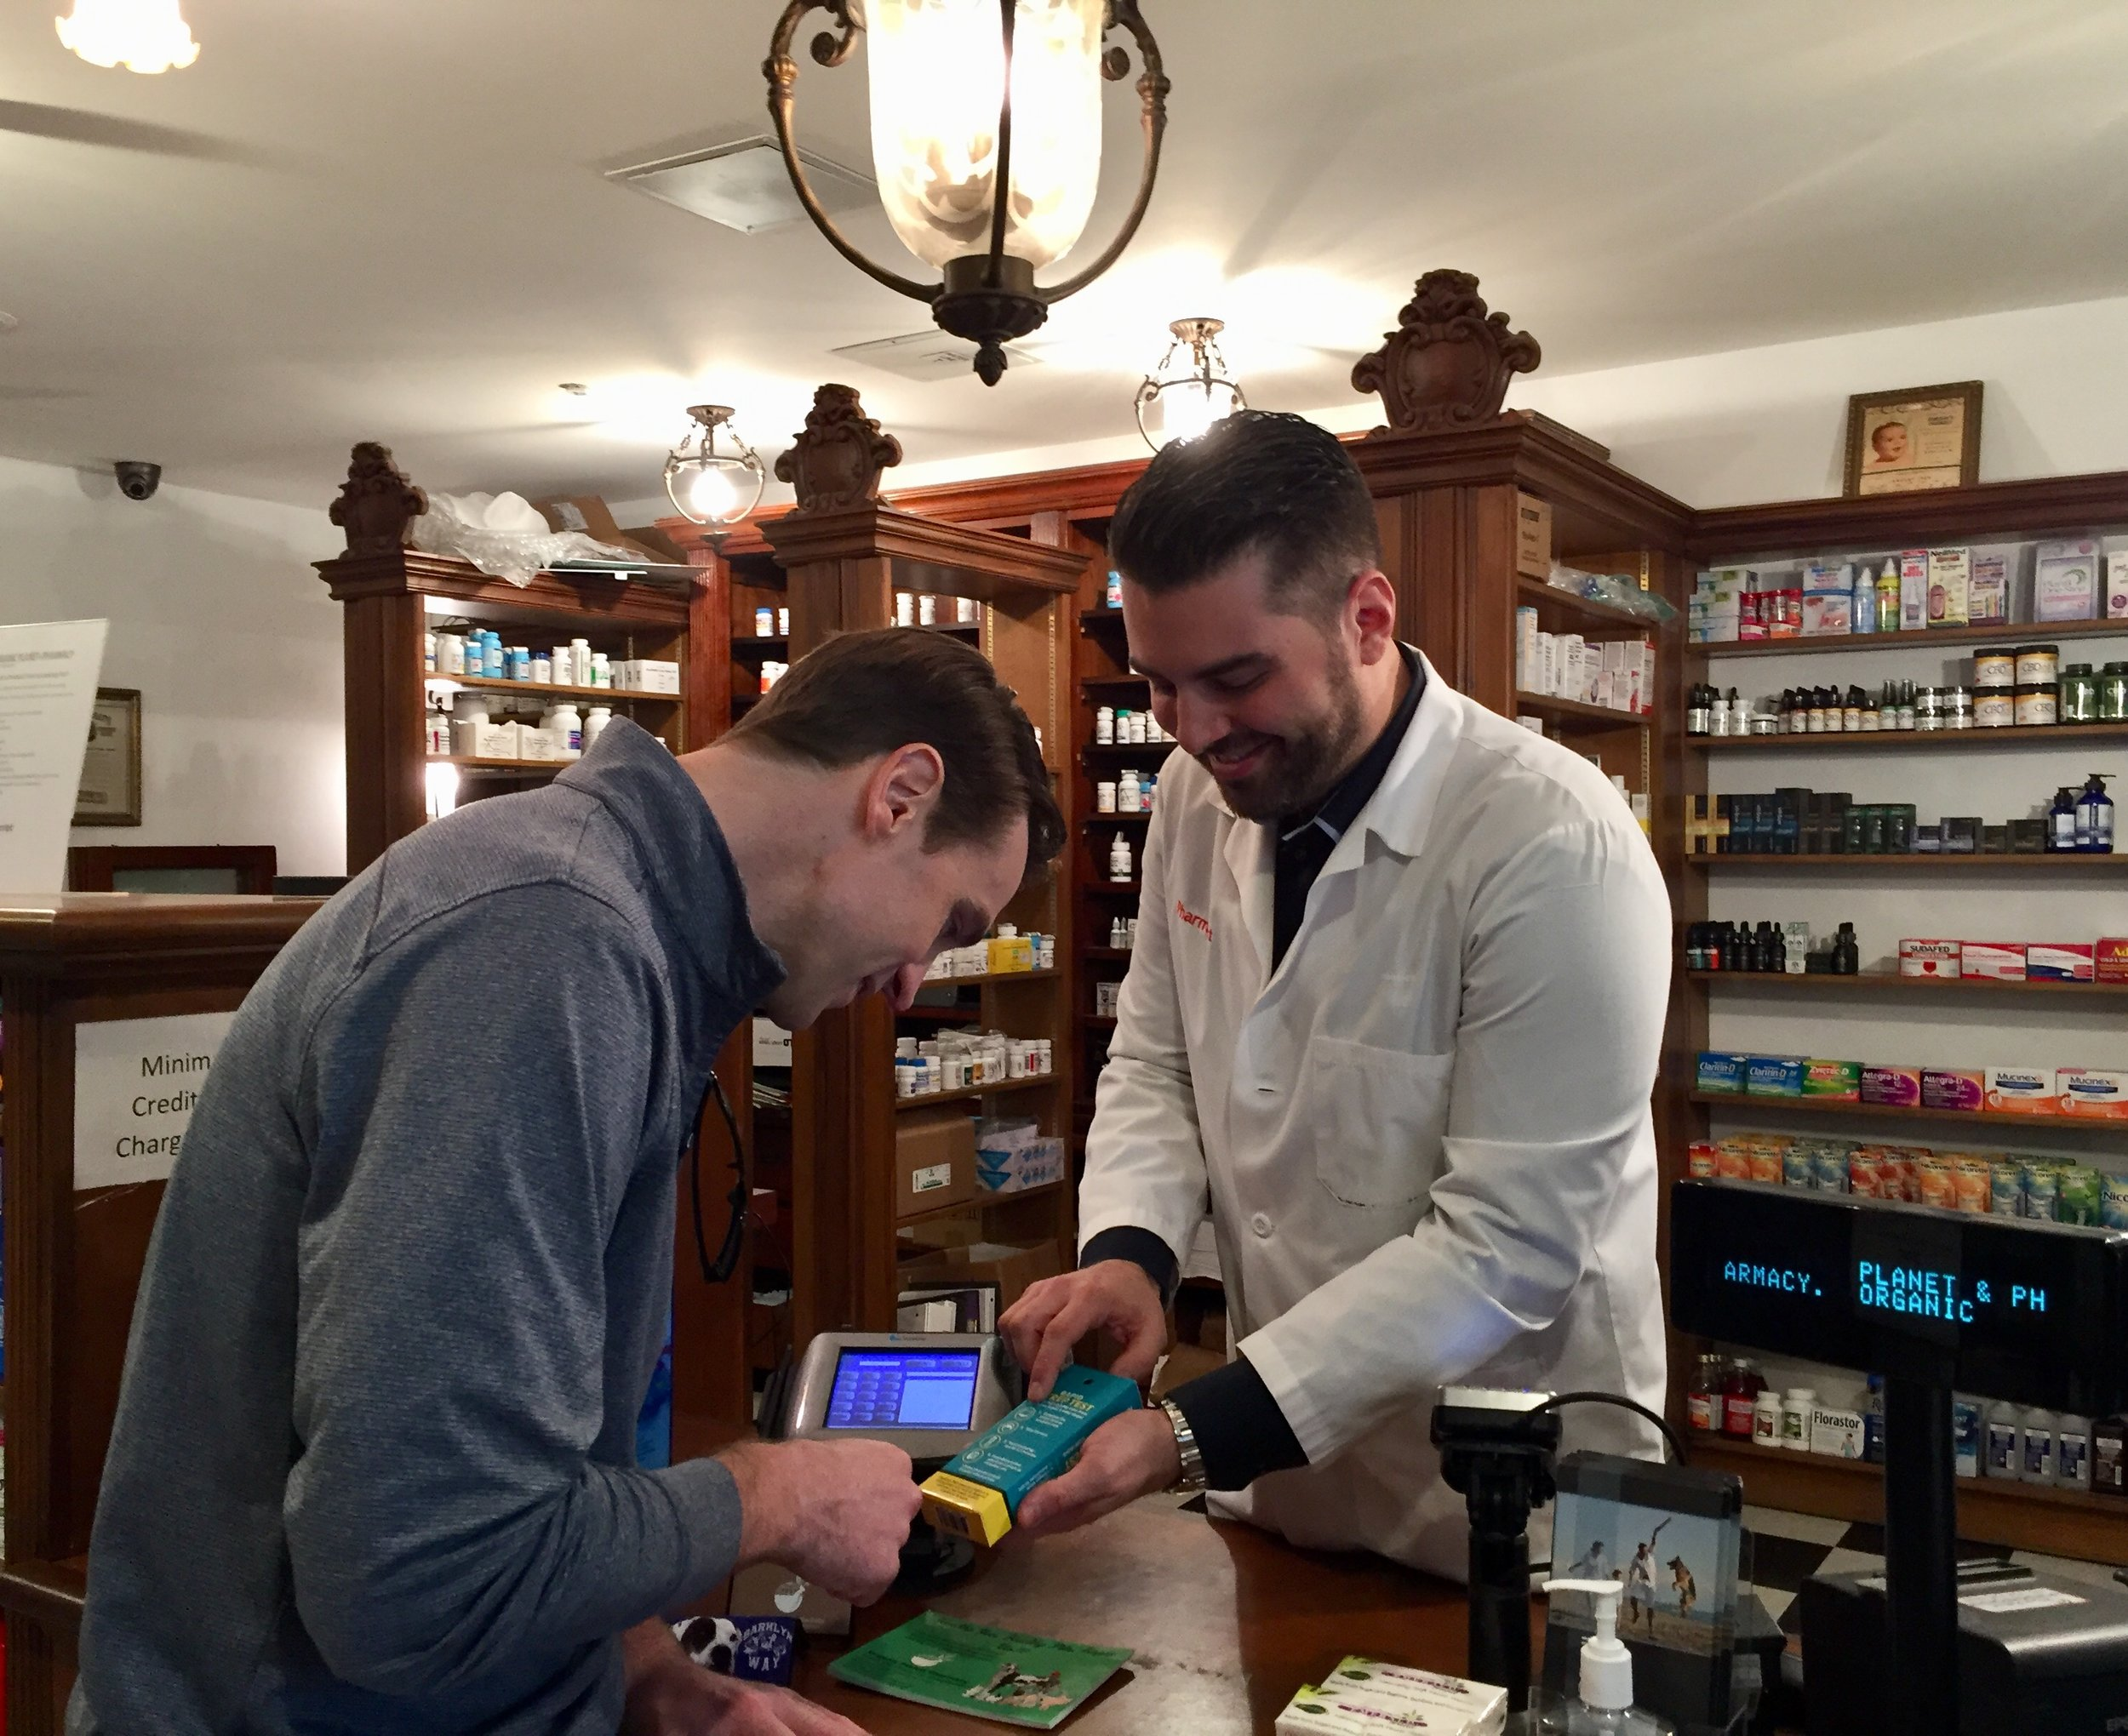 Our pharmacist Demetri counseling one of his patients on how to use a Rapid Strep Test. Our pharmacists always take the extra time to counsel each and every patient of their prescription and over the counter medications. We believe this aspect of our care is an integral part of our professional duties, which is often overlooked in today's busy hectic pharmacies.